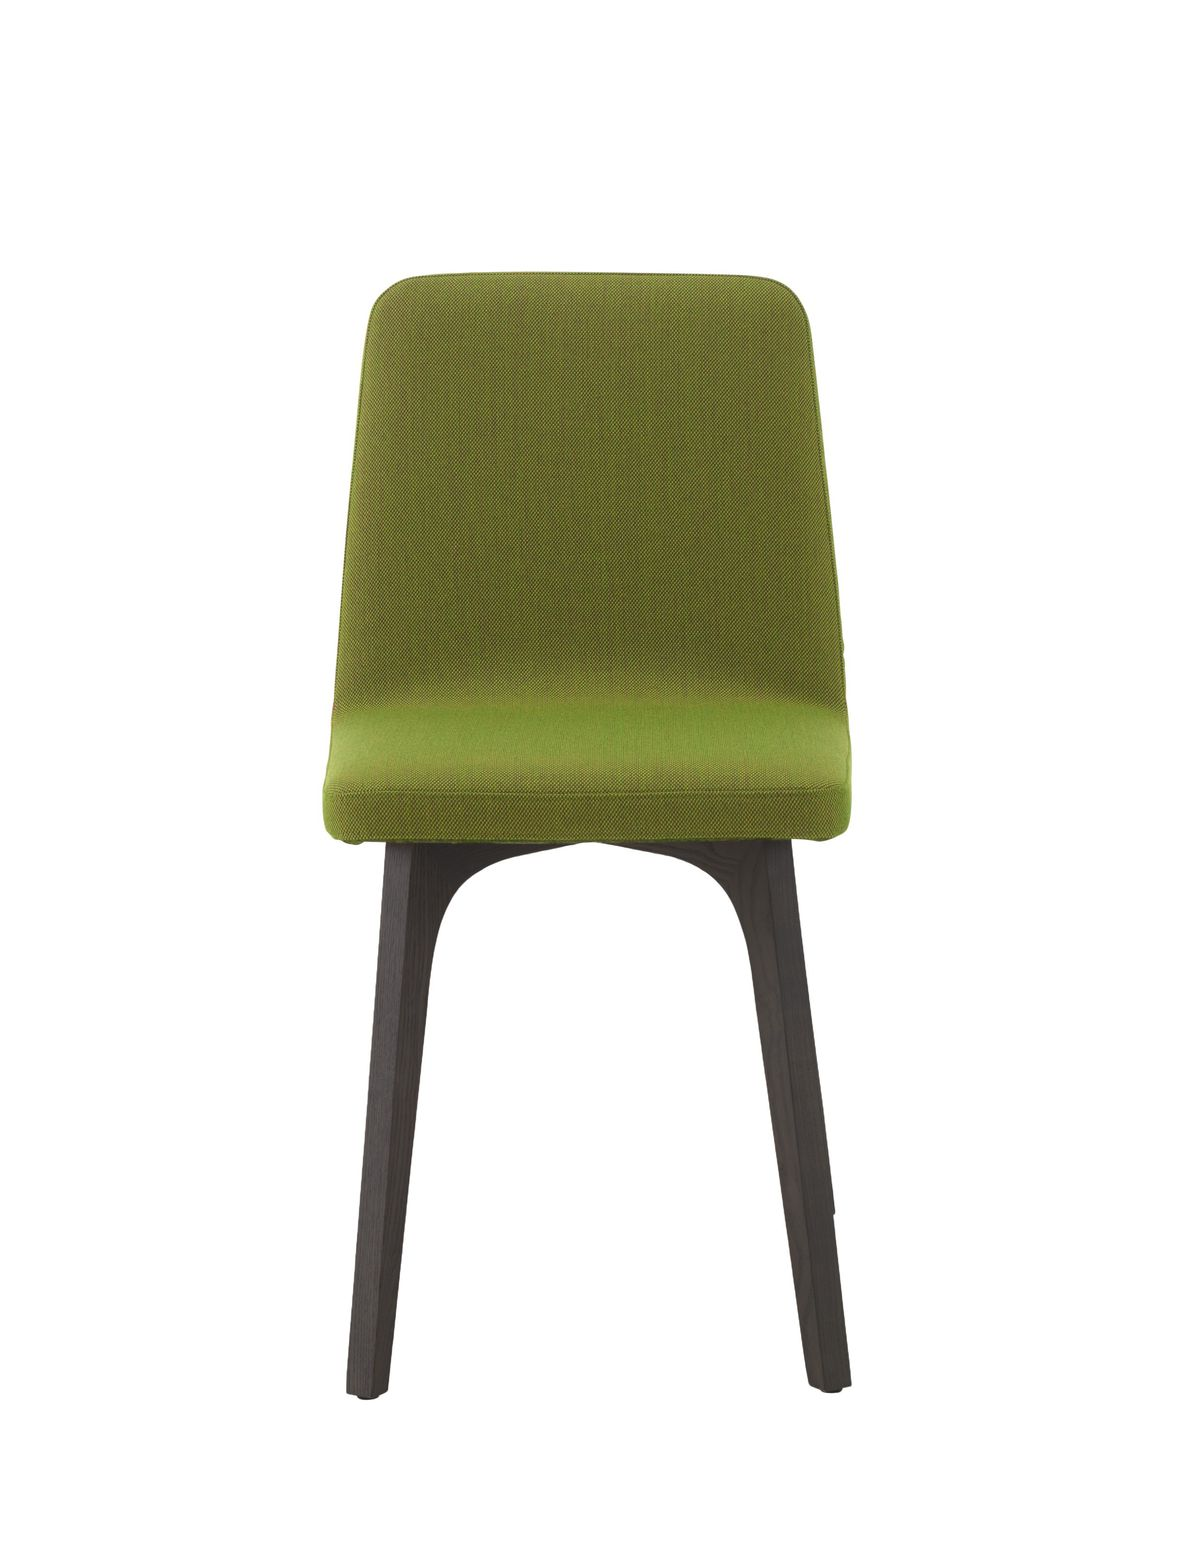 Chair designed by Ligne Roset and Thibault Desombre.